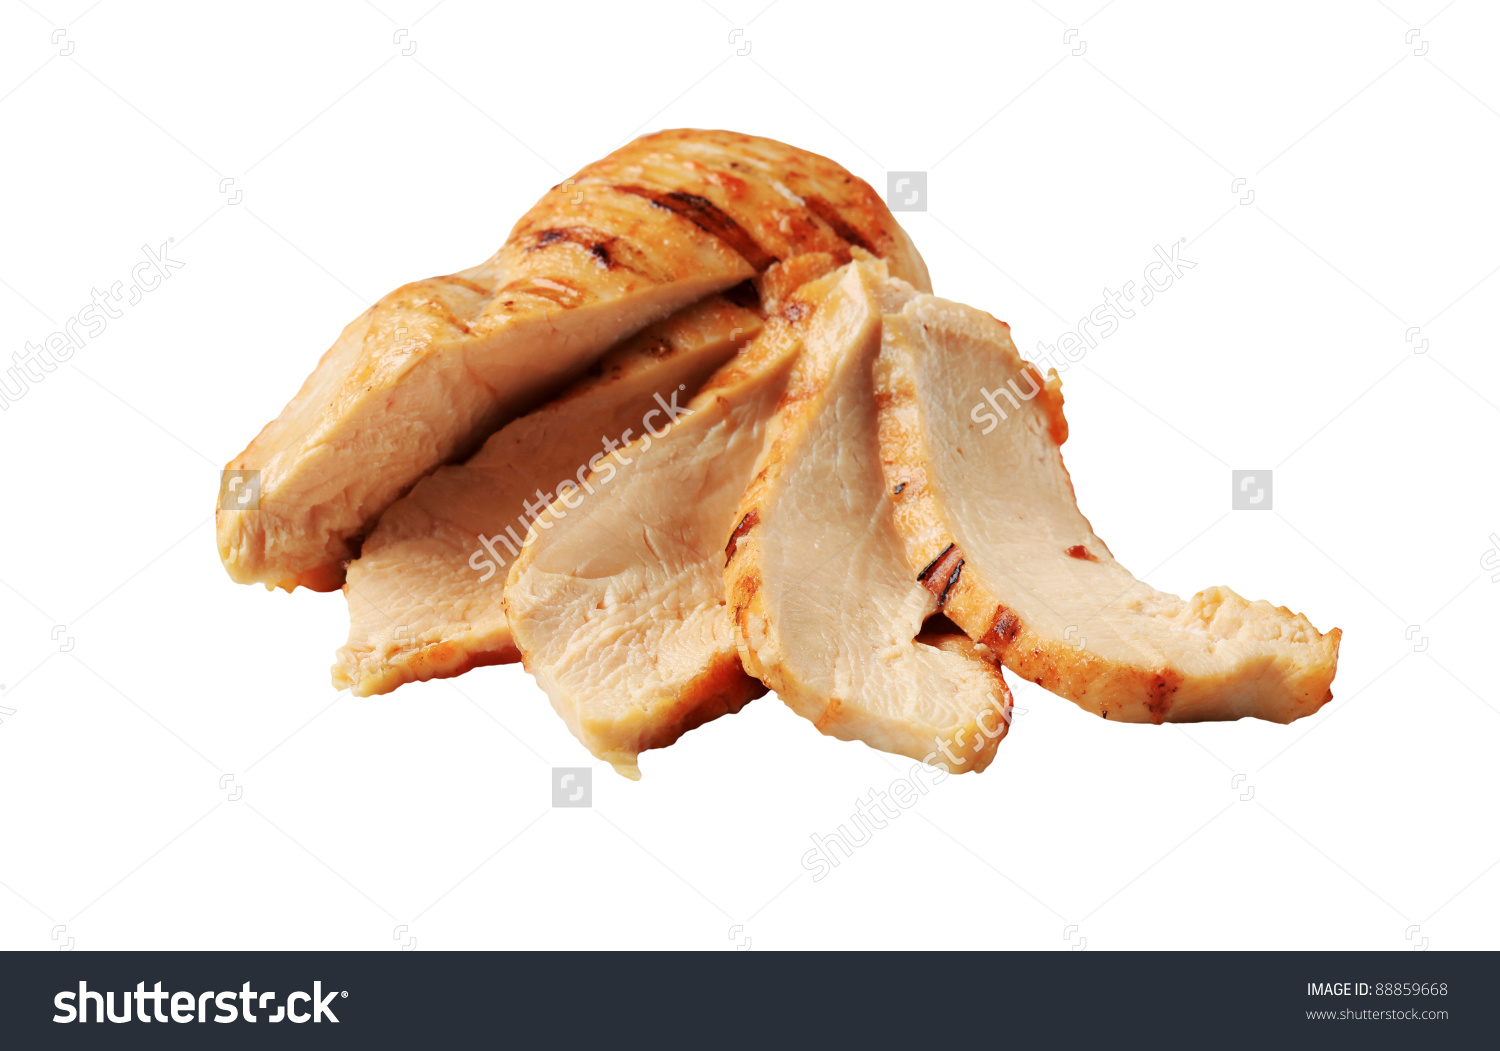 Slices Grilled Chicken Breast Stock Photo 88859668.